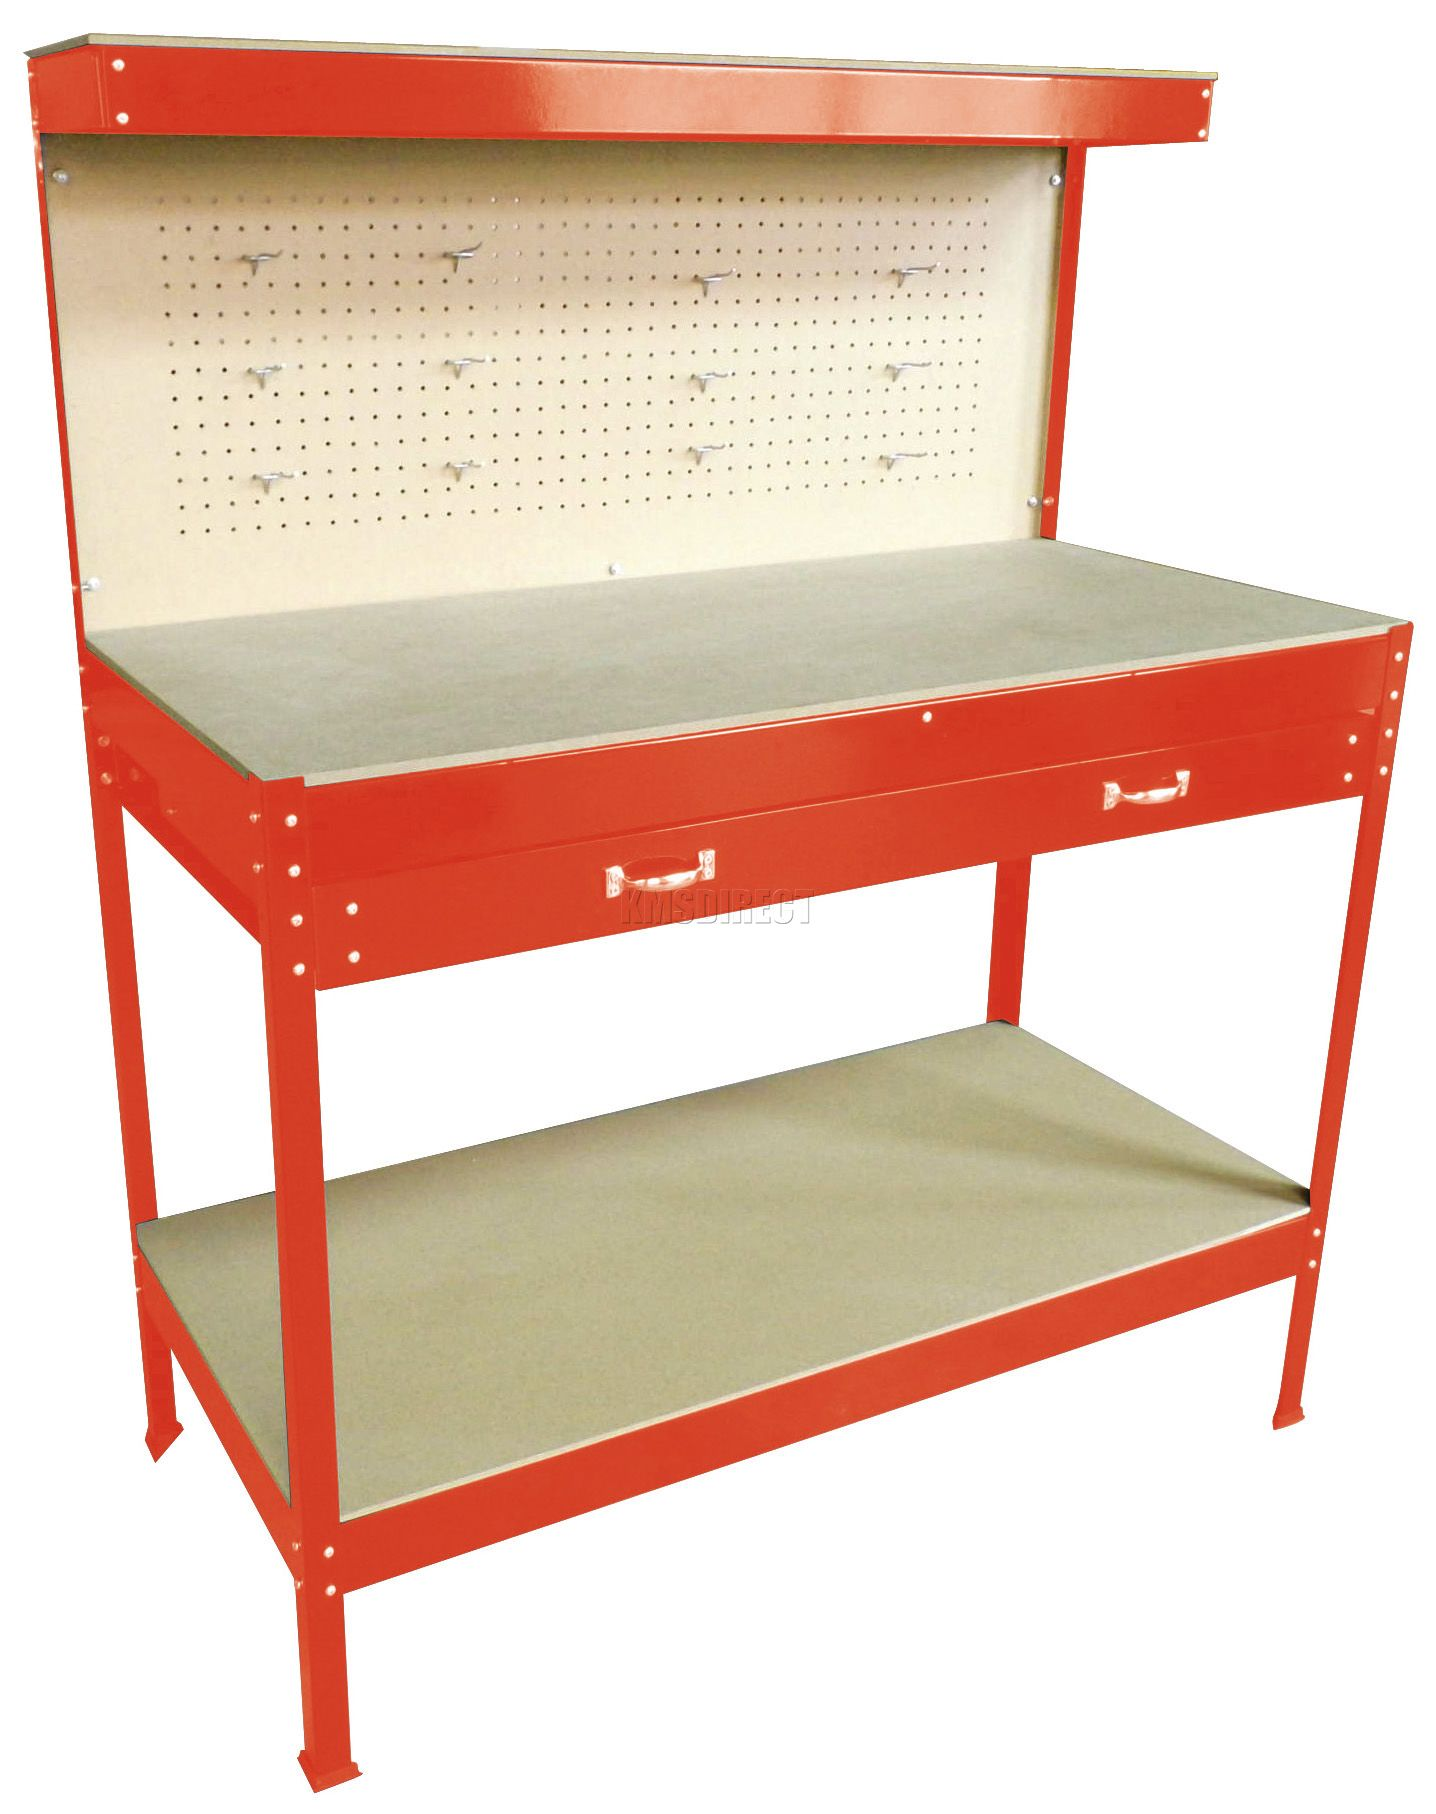 shelf units pegboard wall browse shelving perforated shop